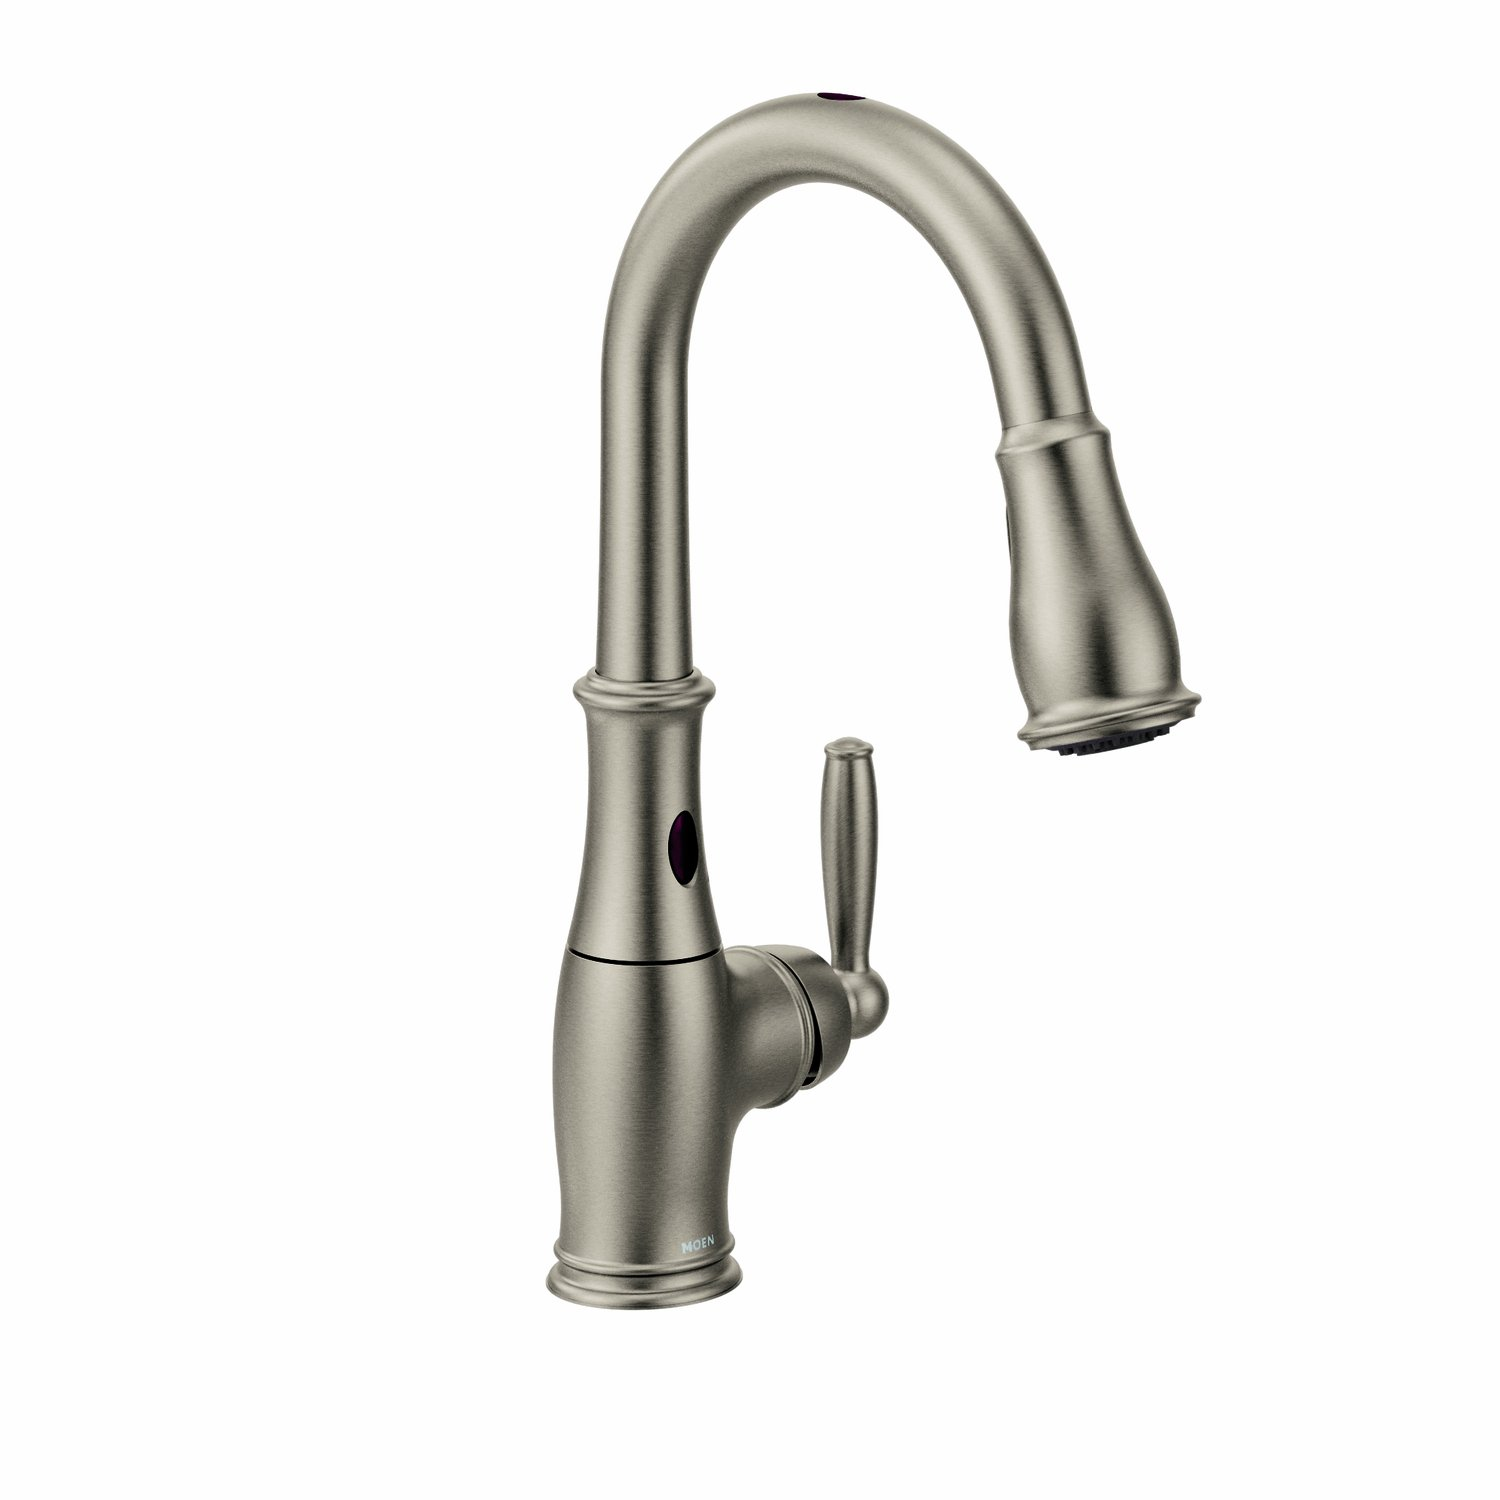 Moen 7185E Brantford With MotionSense One Handle High Arc Pulldown Kitchen  Faucet Featuring Reflex